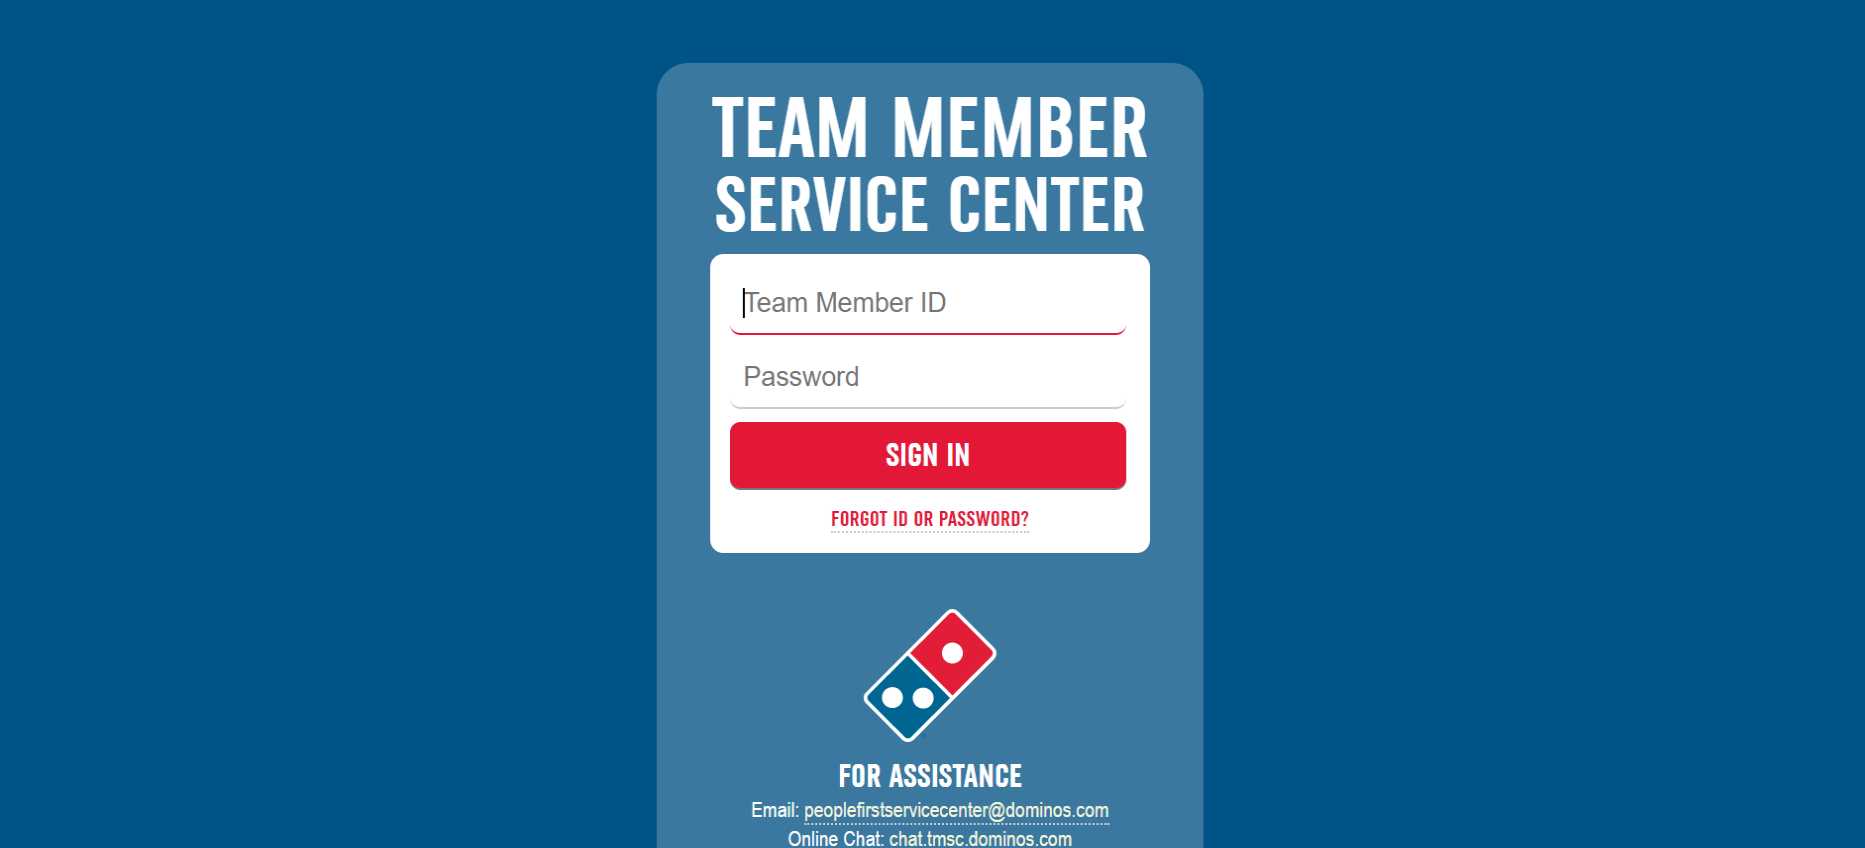 Dominos employee portal